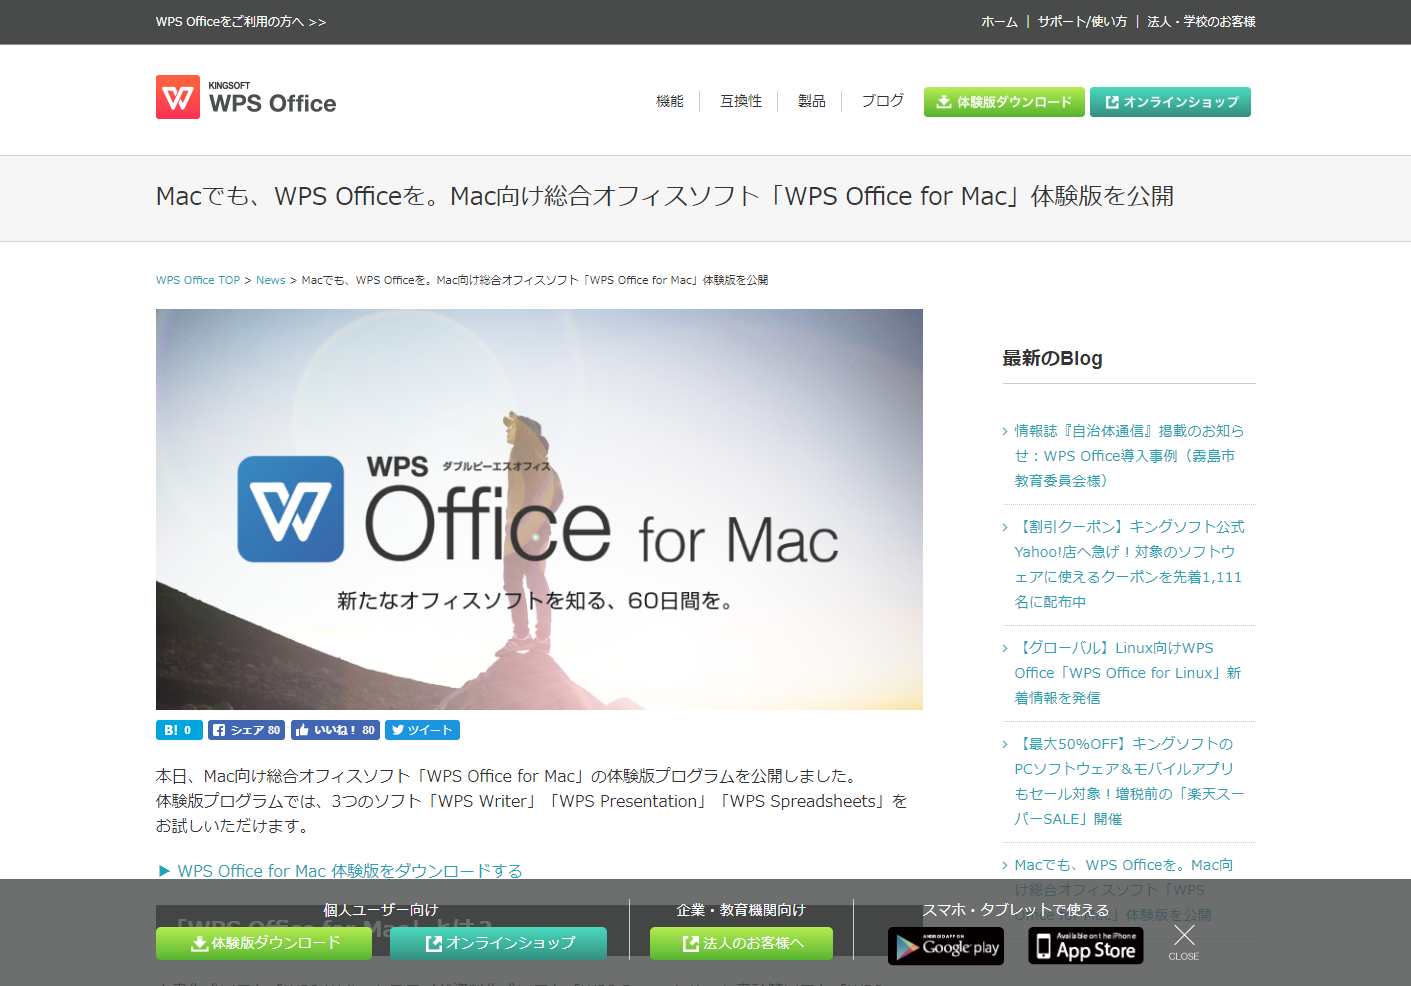 WPS Office for Mac の紹介ブログ